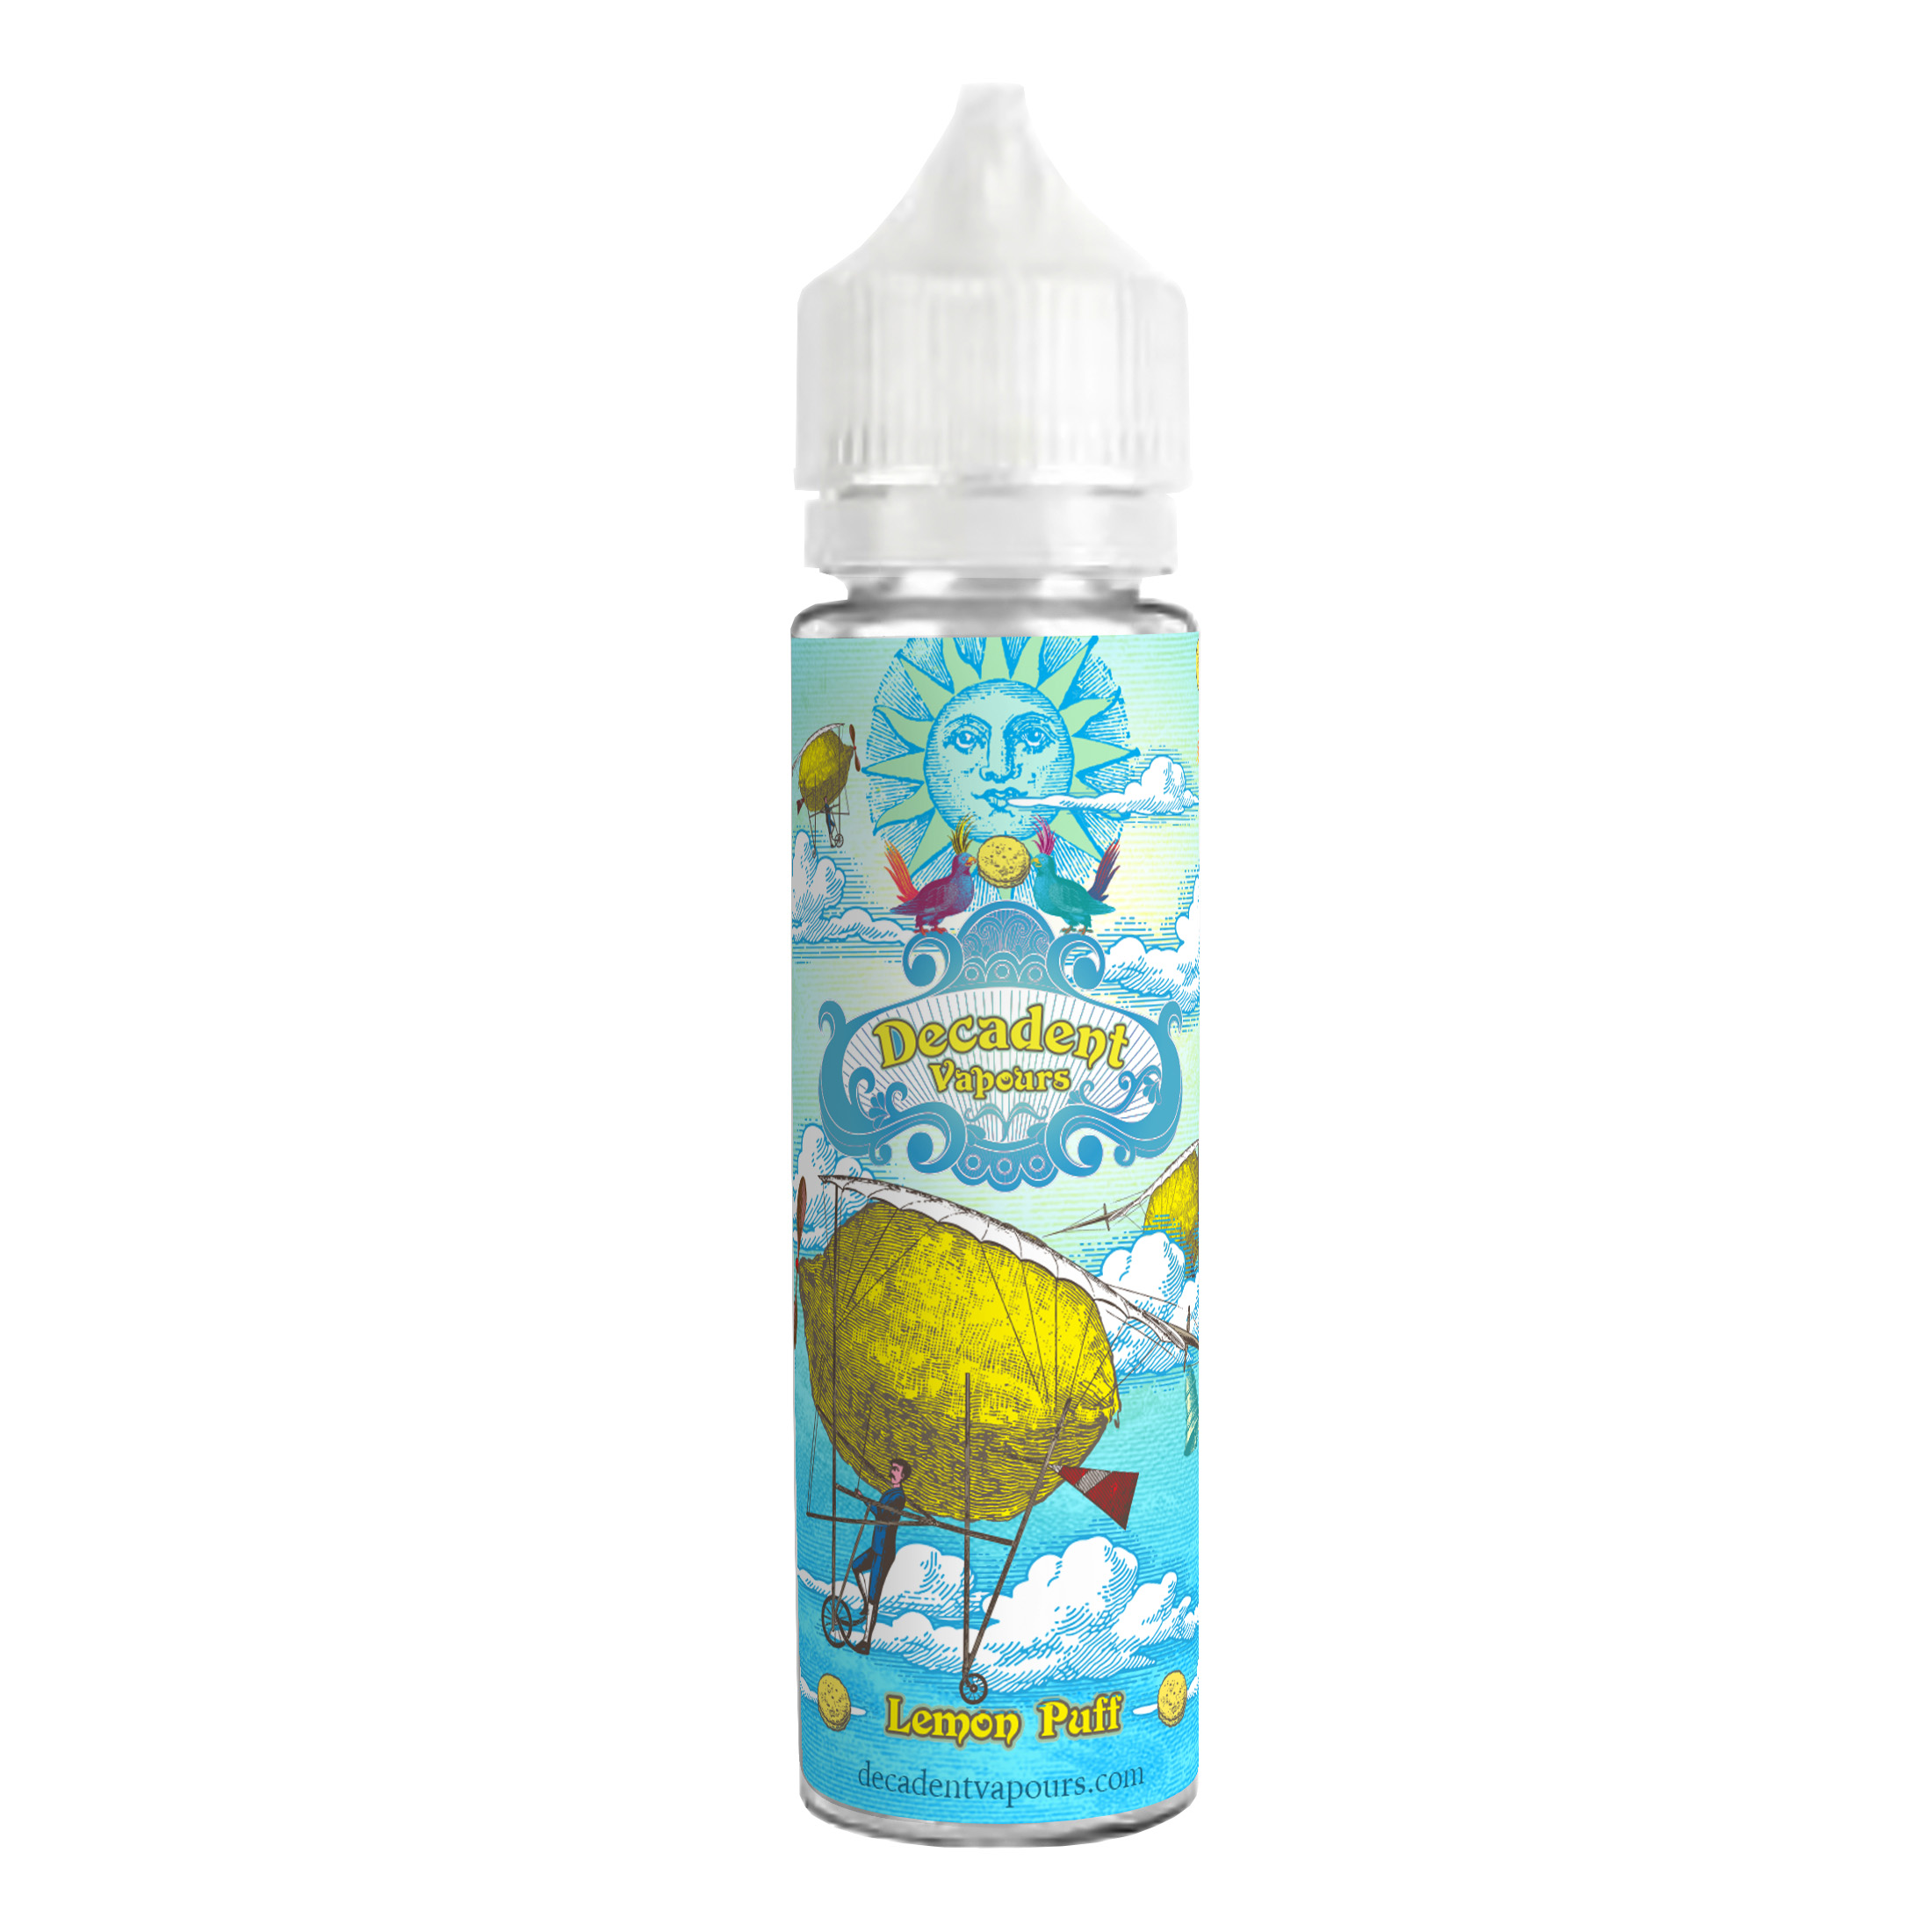 Lemon Puff E-Liquid (60ml Shortfill)